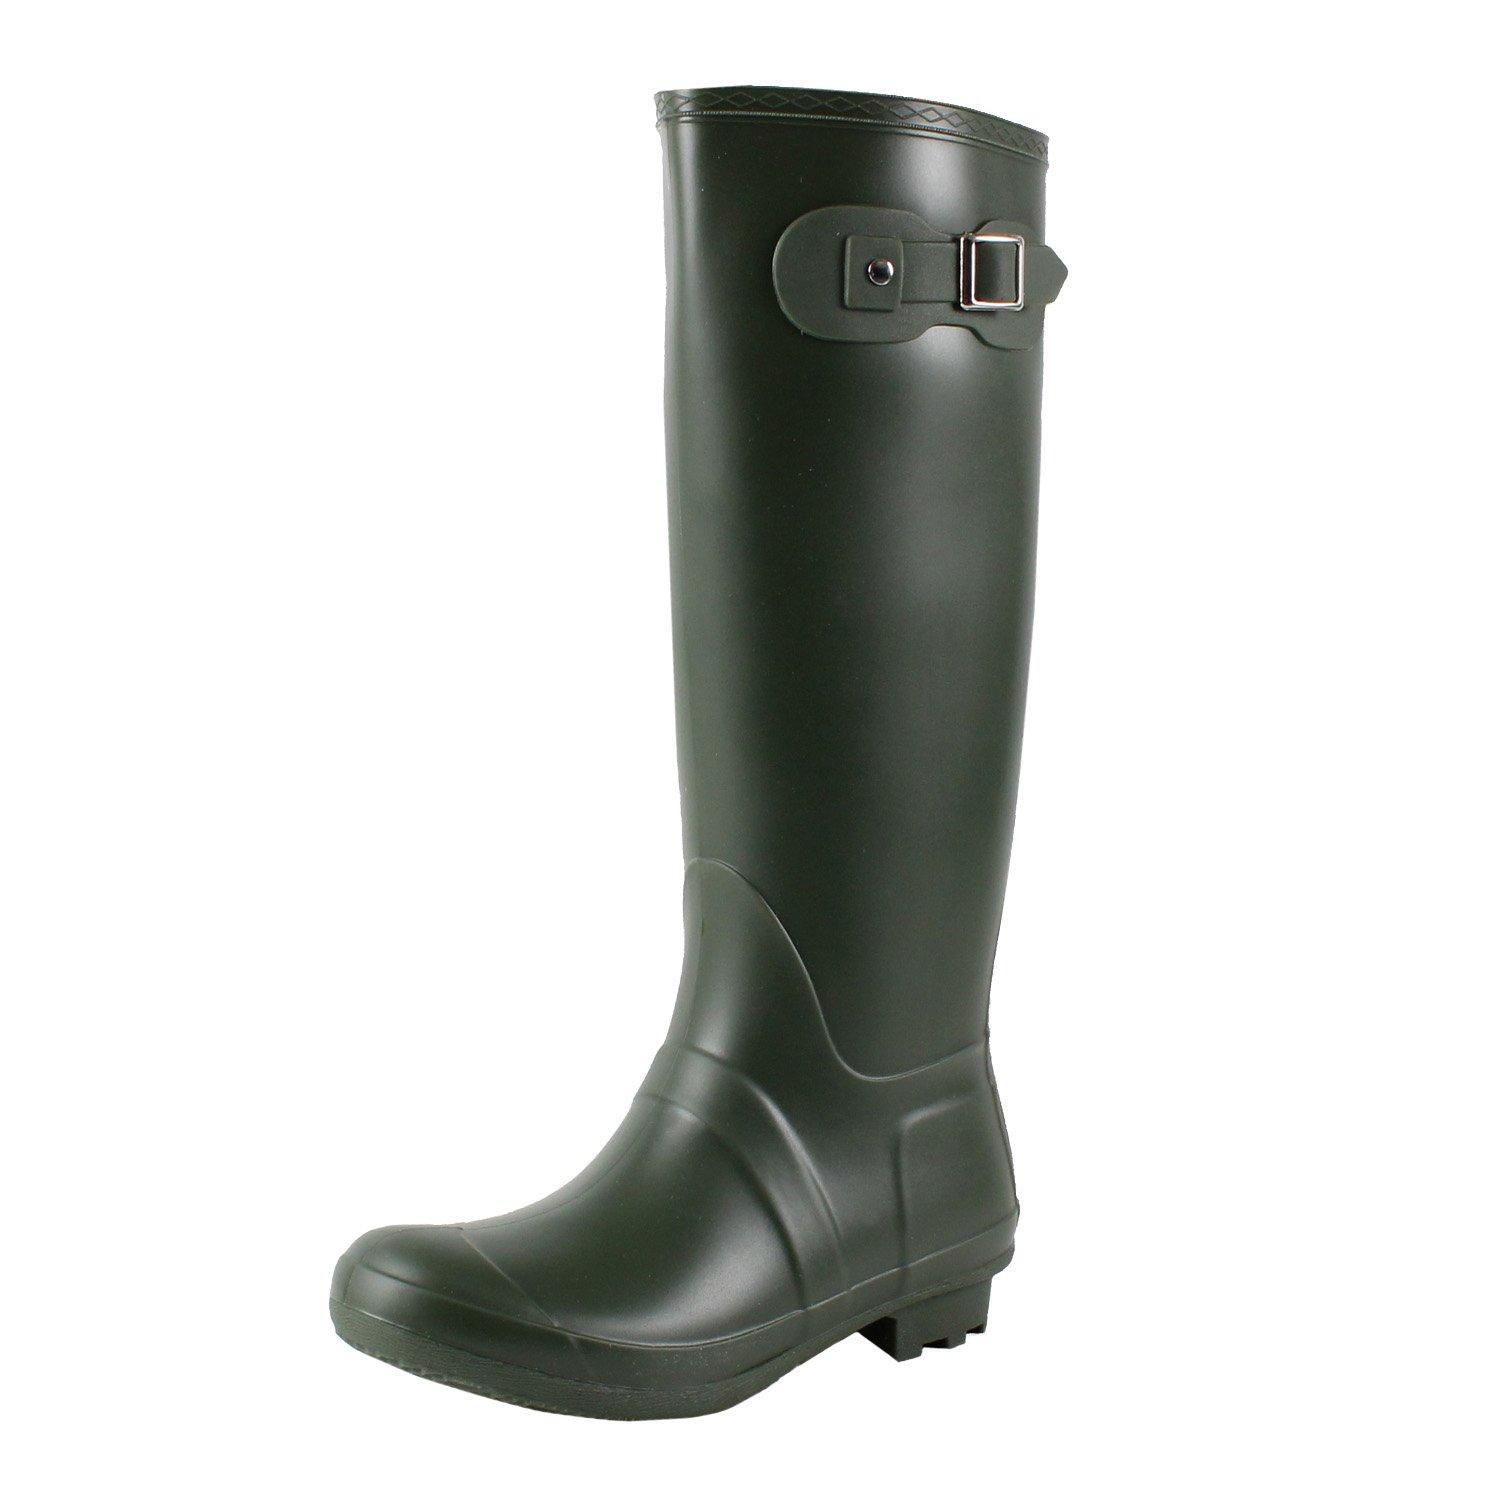 Guilty Heart Waterproof Knee High Wellington Rubber Rainboots Rain Footwear